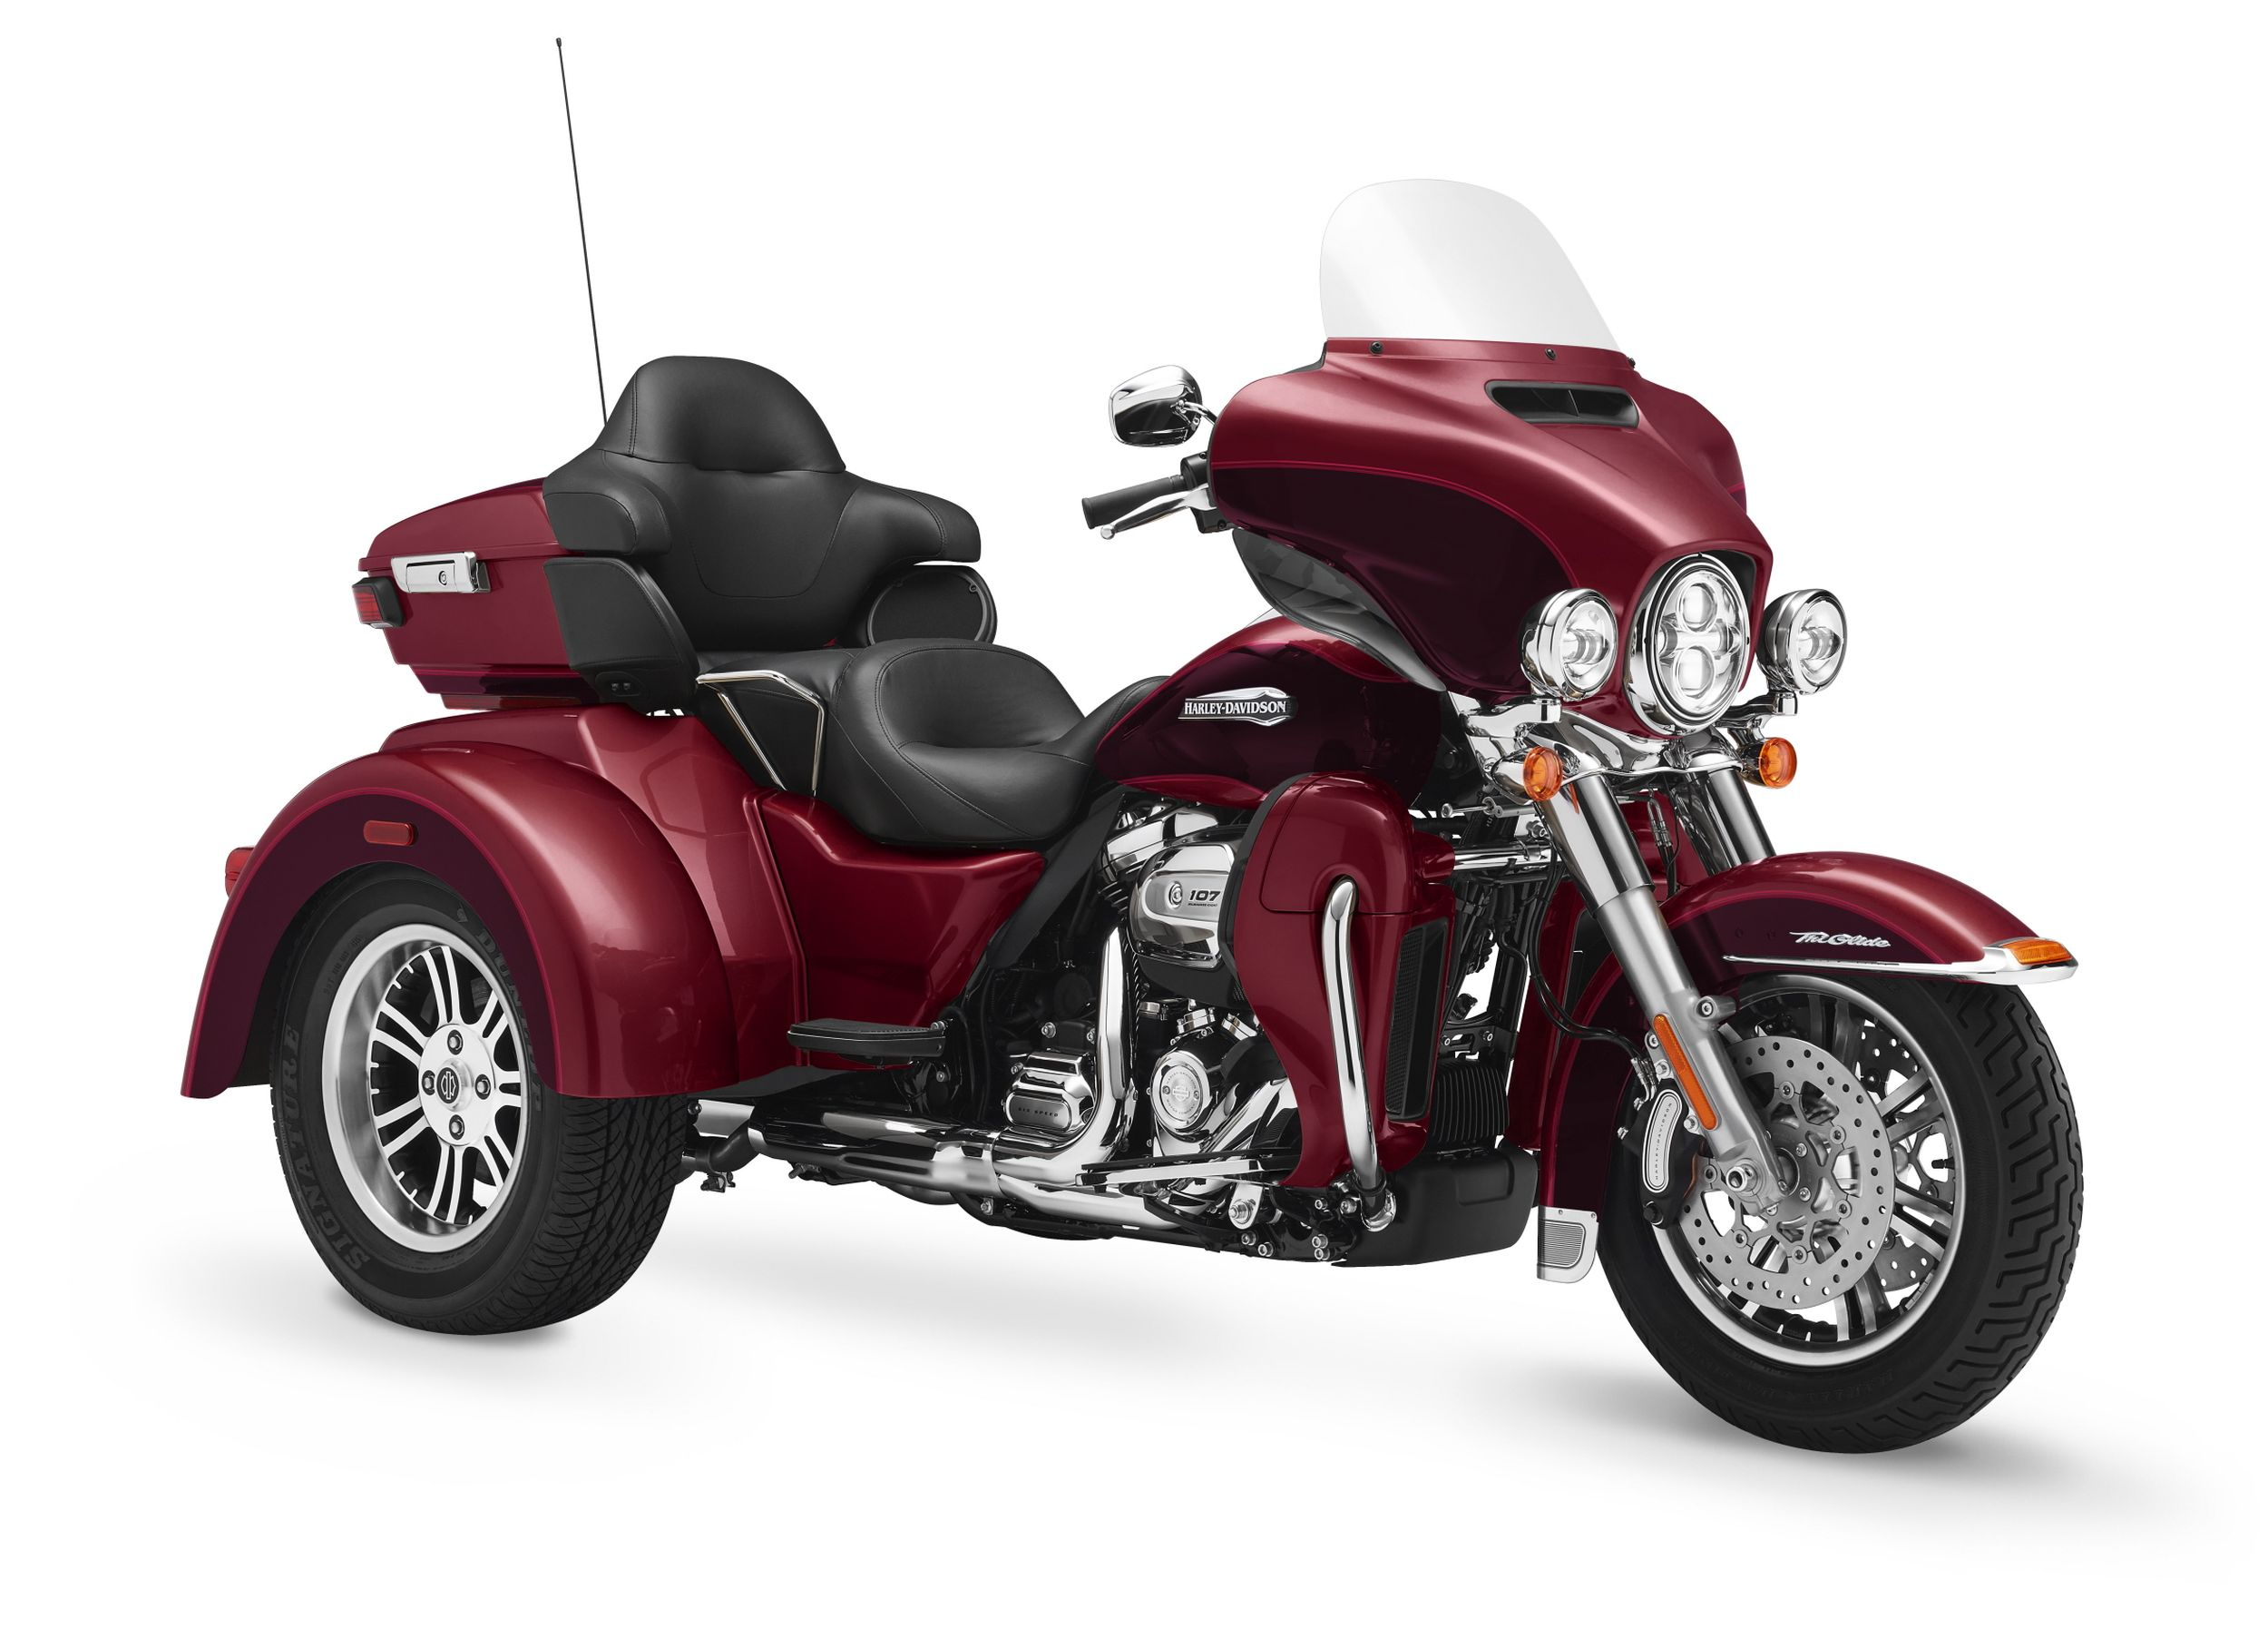 gebrauchte harley davidson tri glide ultra classic motorr der kaufen. Black Bedroom Furniture Sets. Home Design Ideas